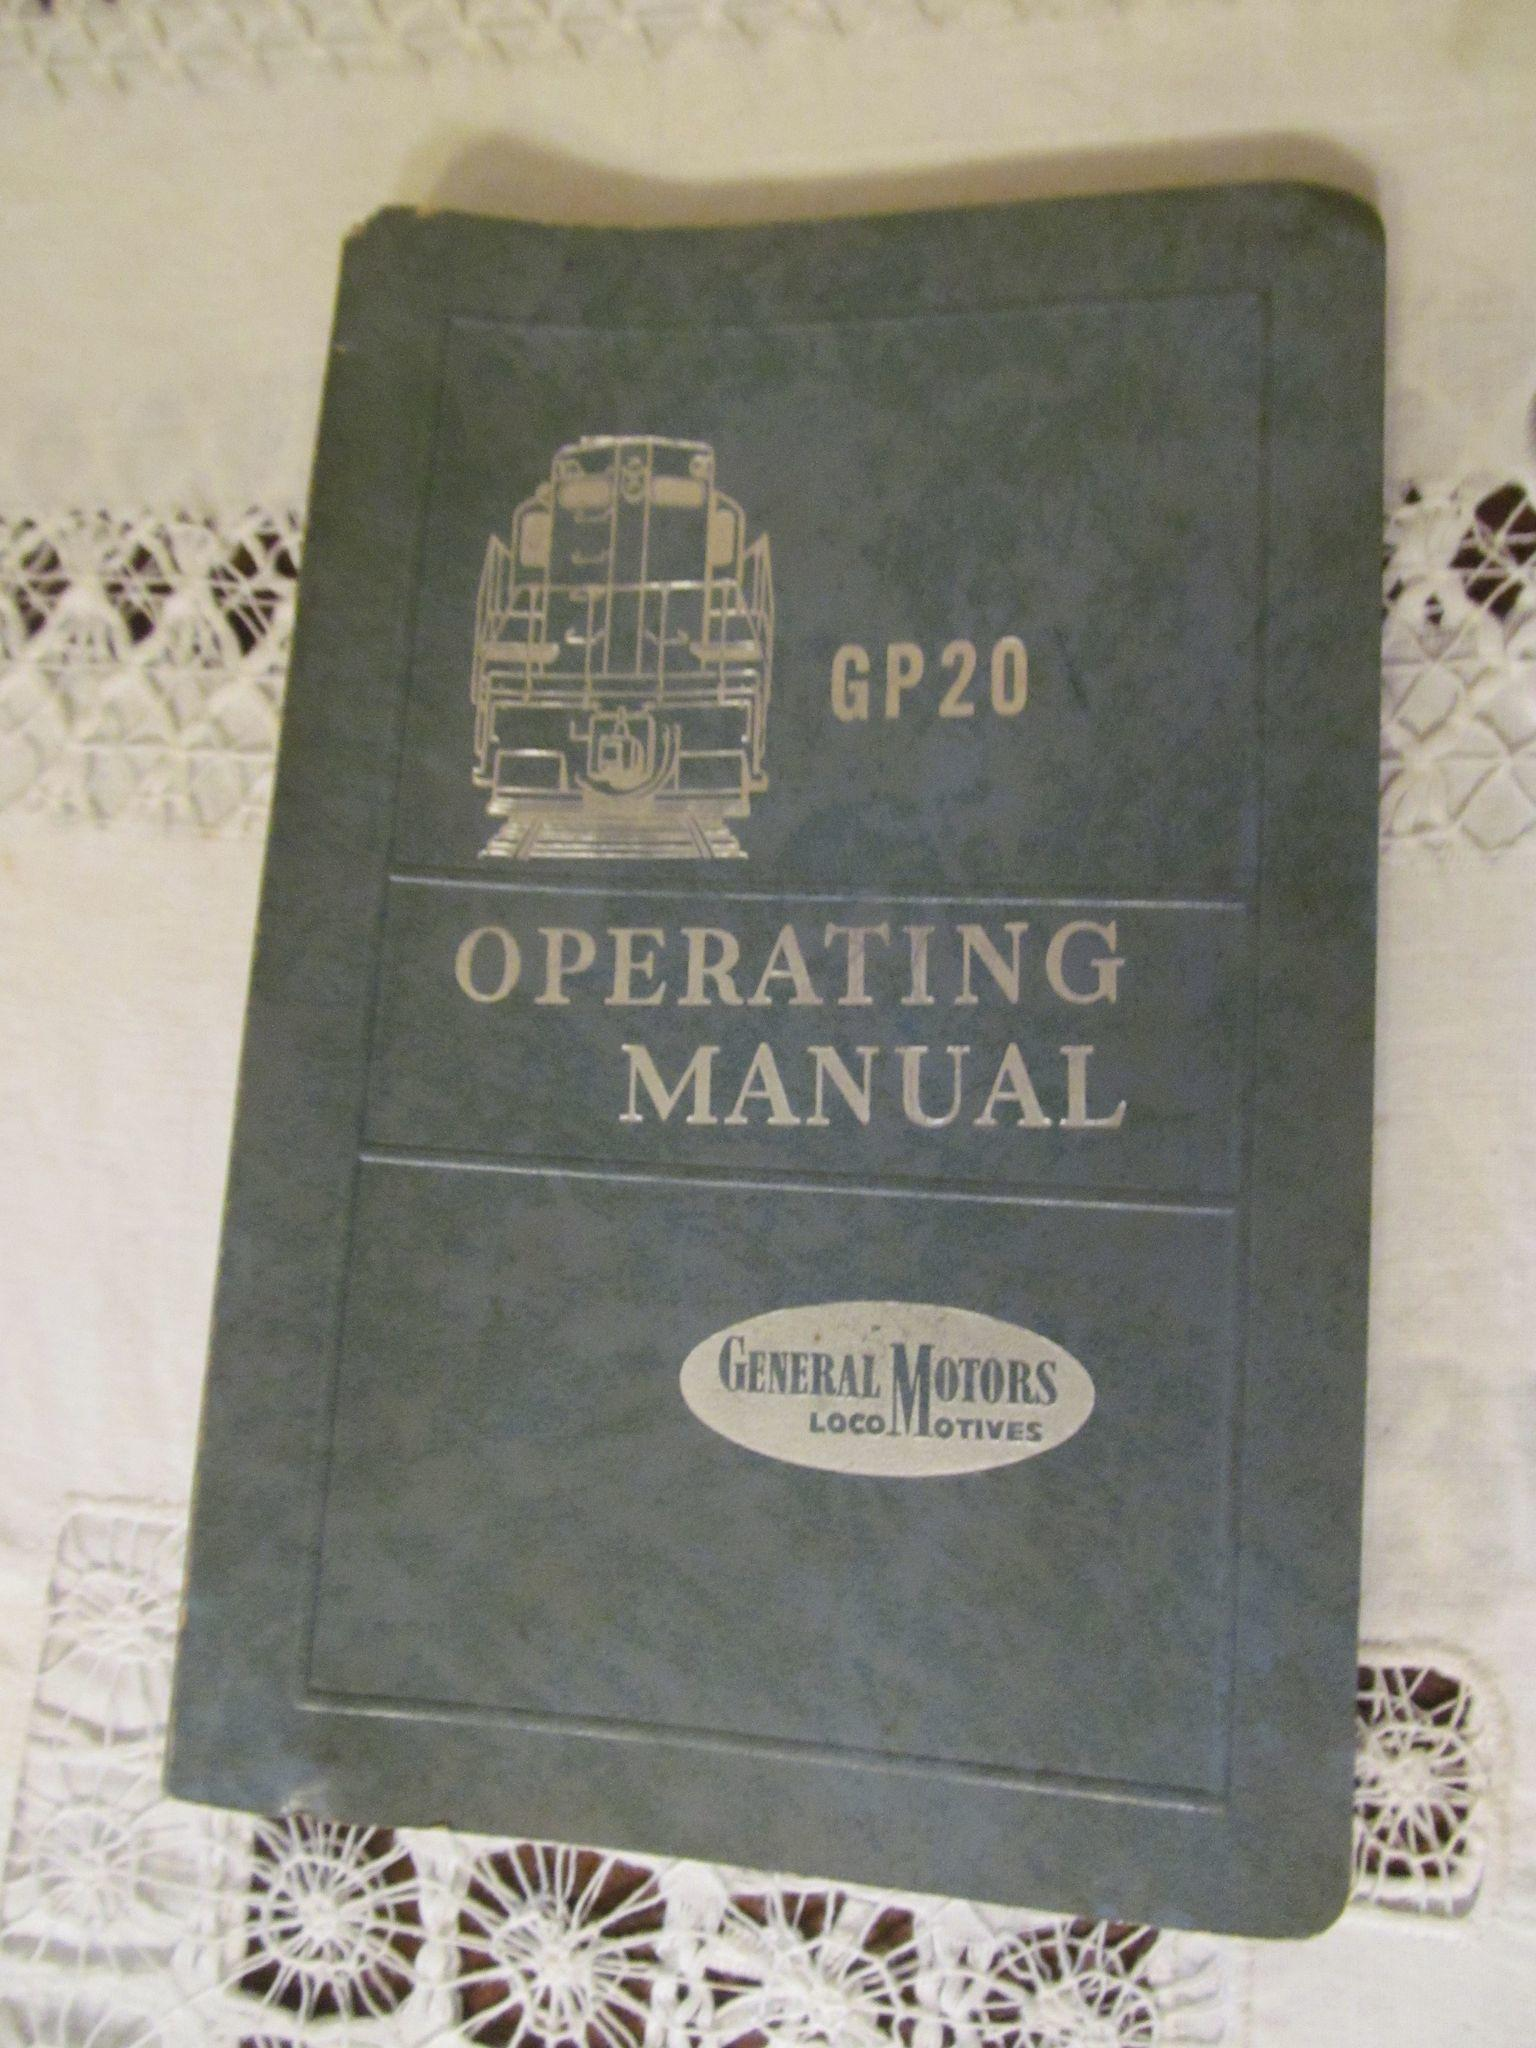 1959 Emd Diesel Locomotive Operating Manual For Model Gp20  General From Prairieland On Ruby Lane